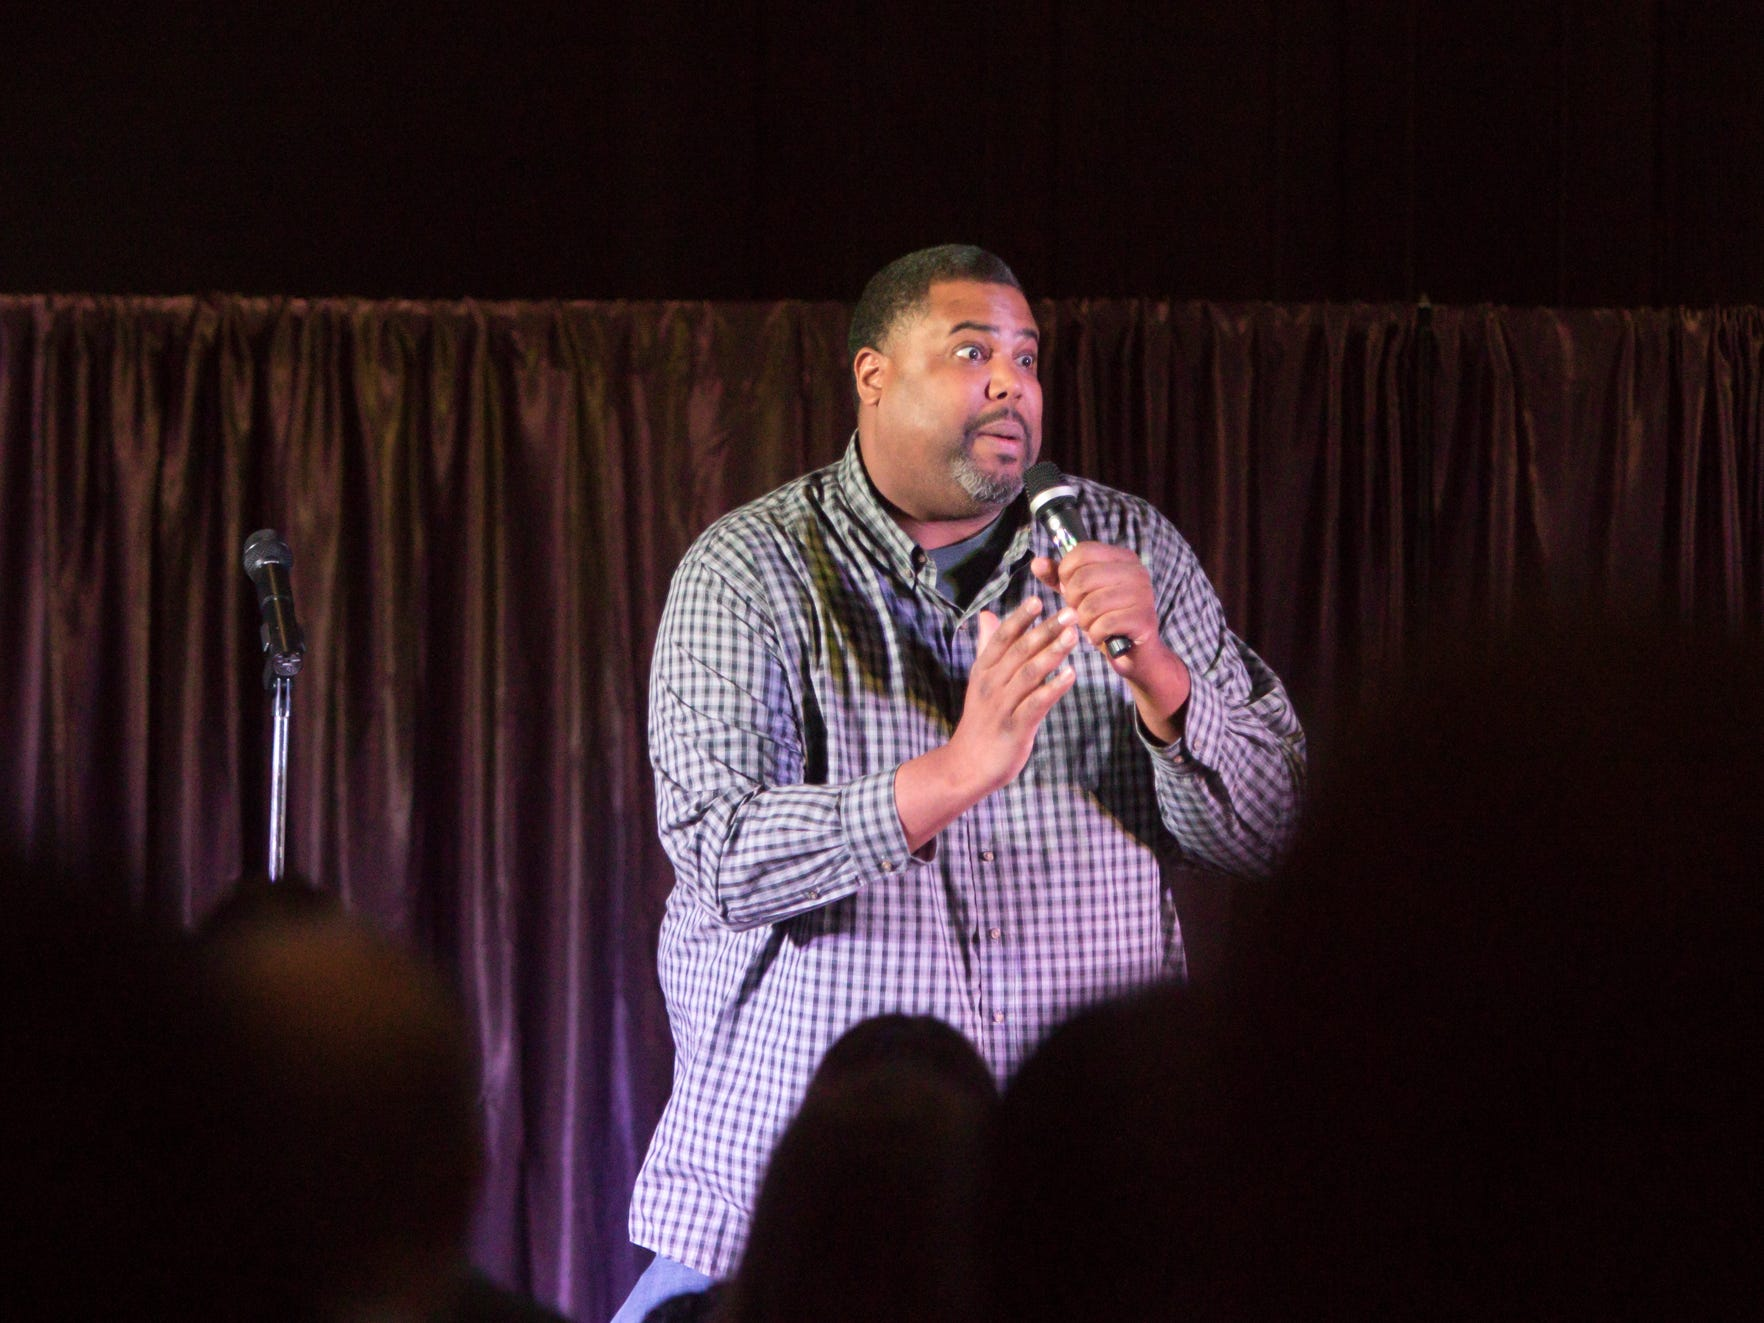 Comedian Cam Rowe was among several providing laughs at Love, INC's benefit event Thursday, March 14, 2019.